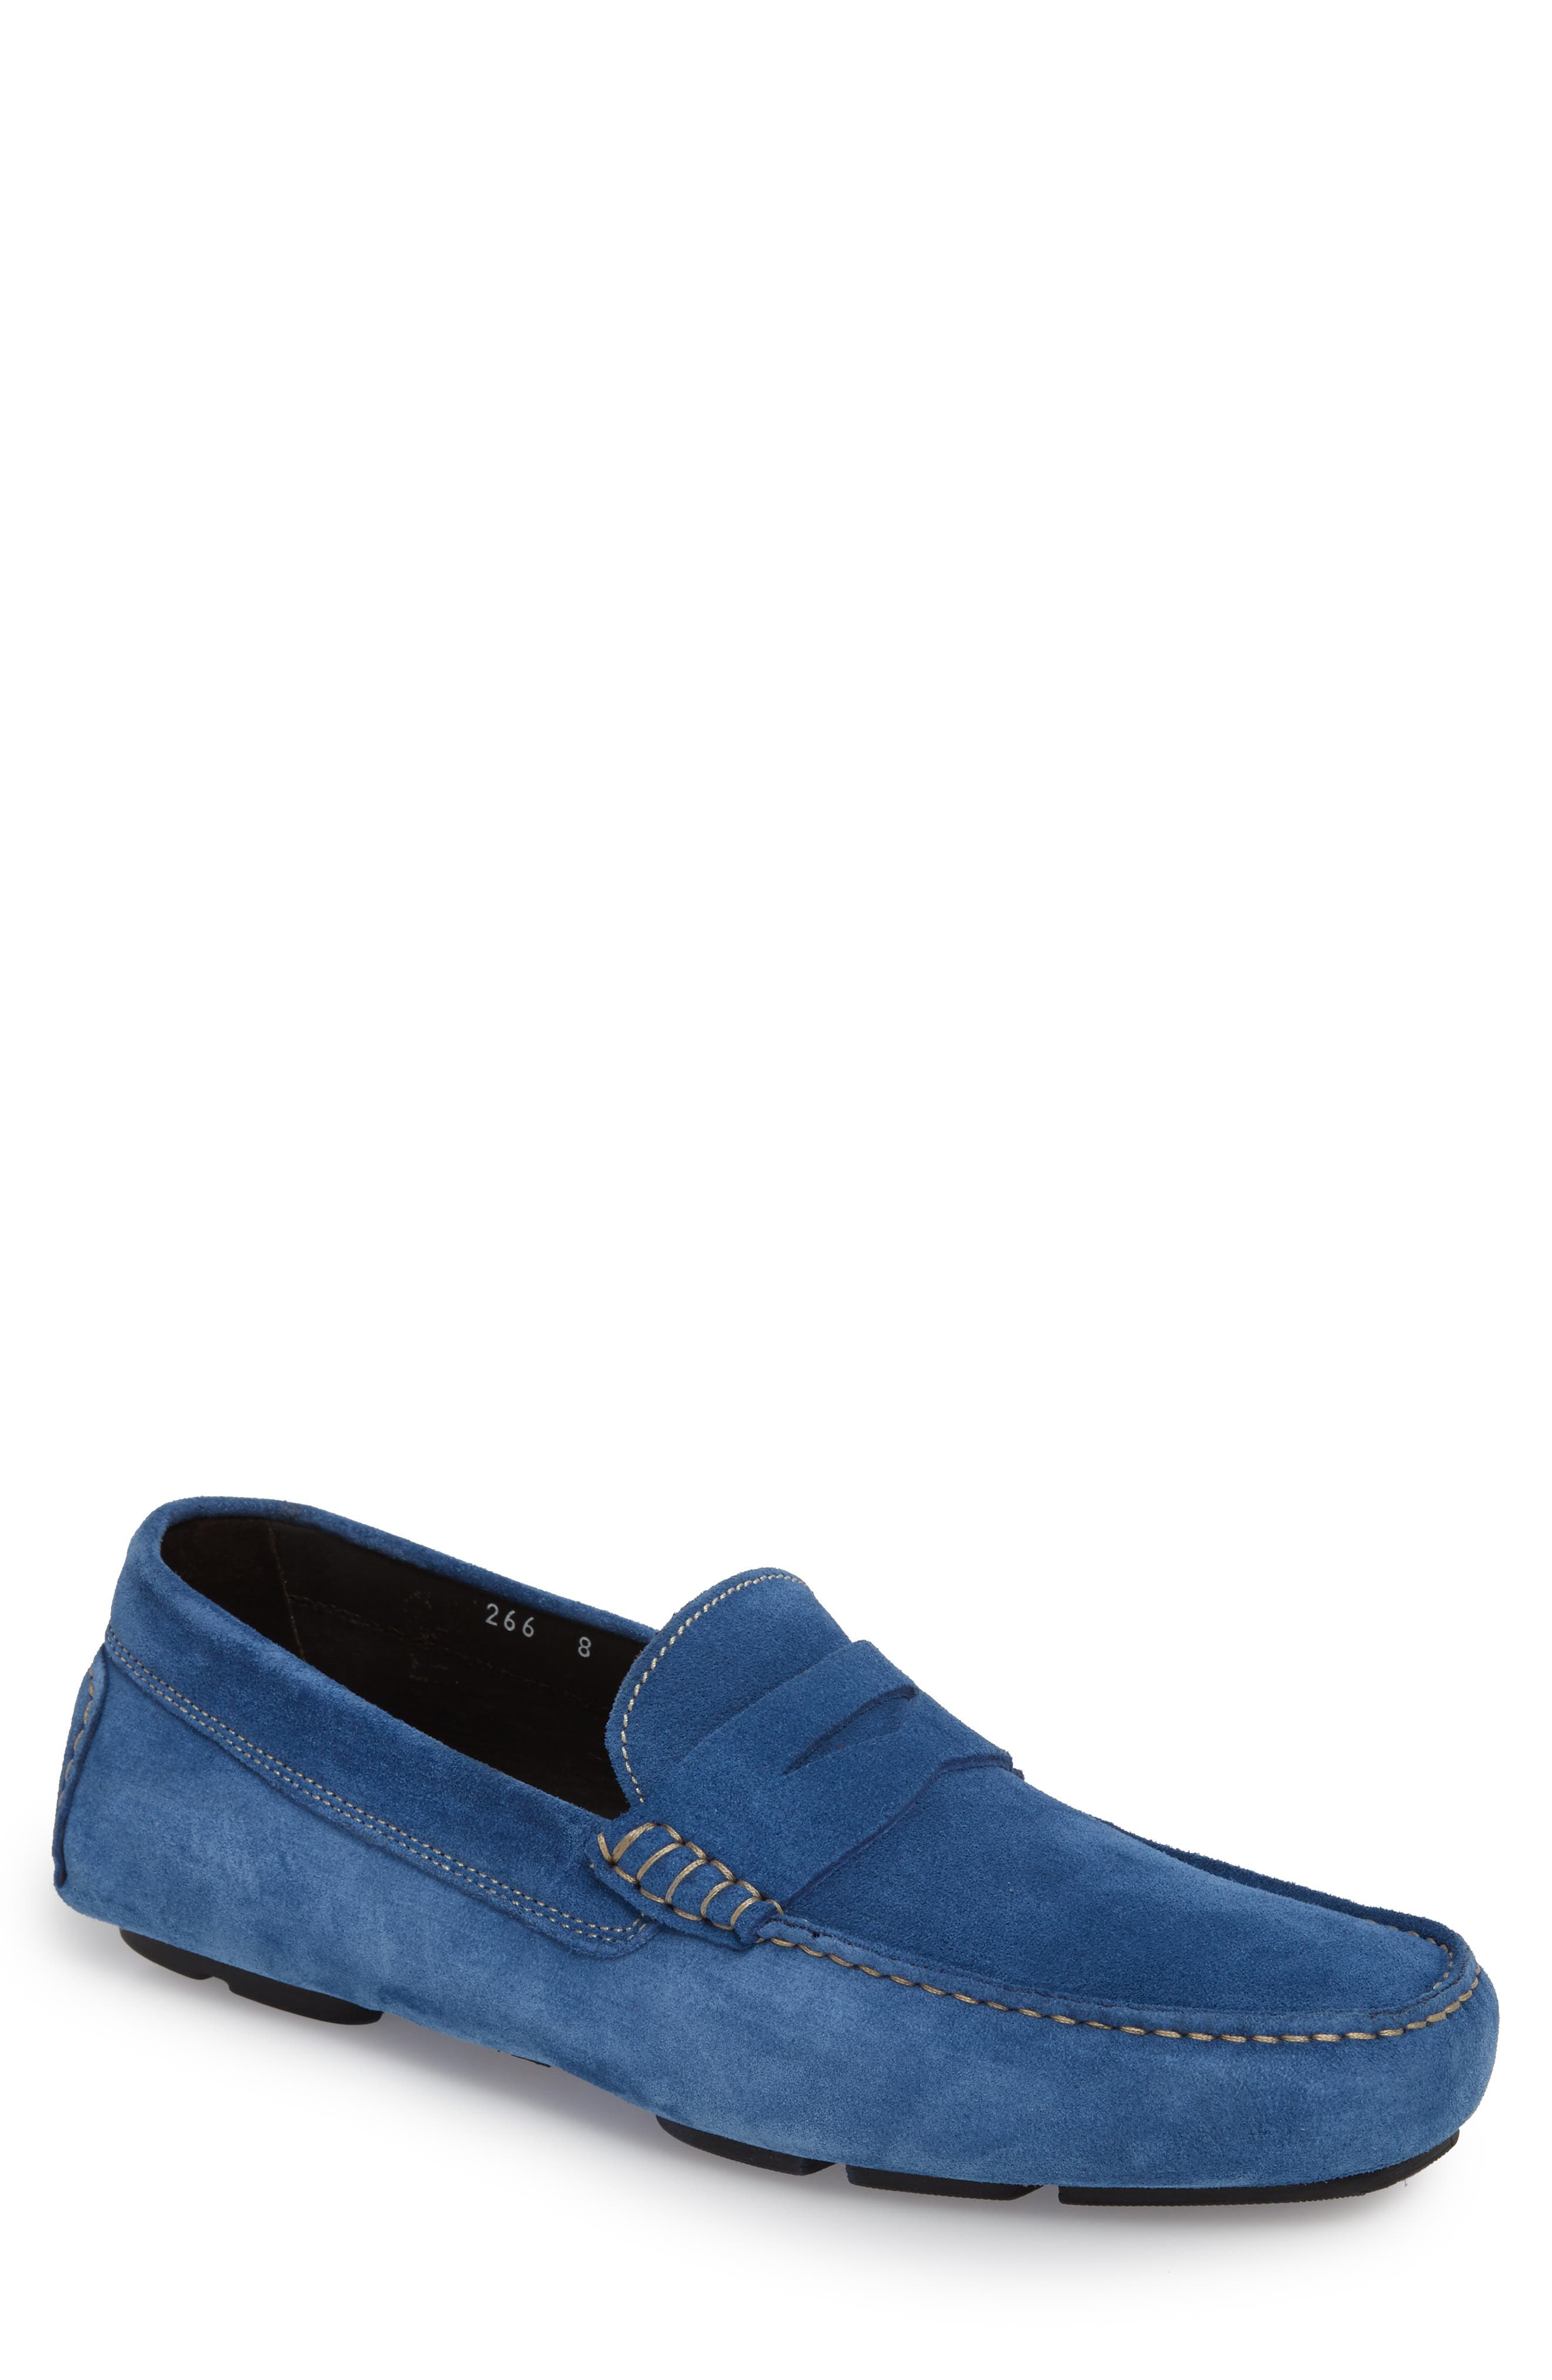 To Boot New York Jackson Penny Driving Loafer, Blue